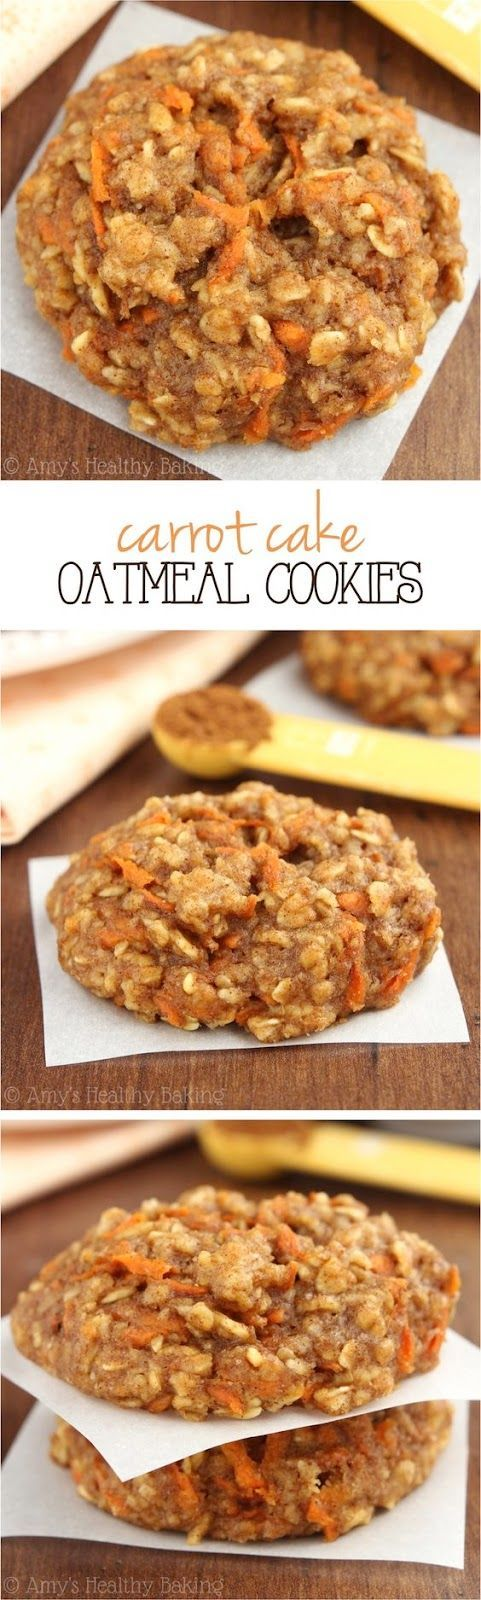 Carrot Cake Oatmeal Cookies | See The Pics